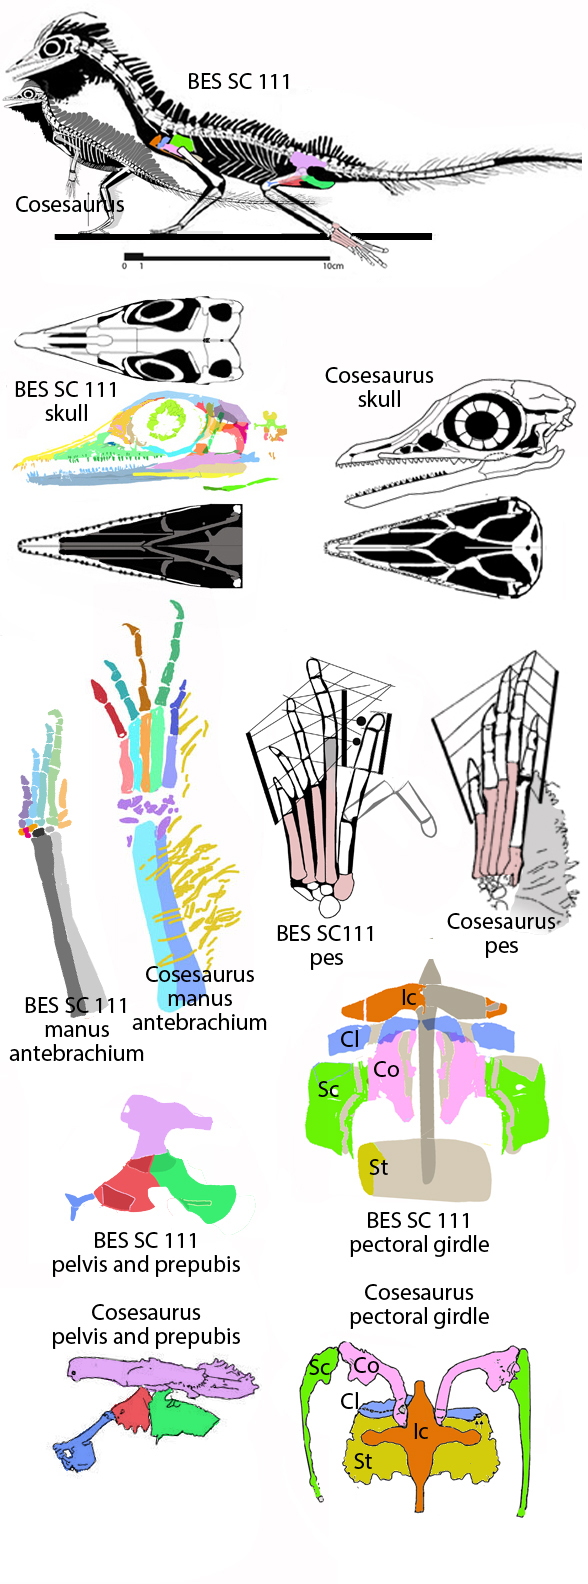 Figure 1. The BES SC111 specimen attributed to Macrocnemus compared to Cosesaurus, the taxon transitional to pterosaurs. See text for detais.